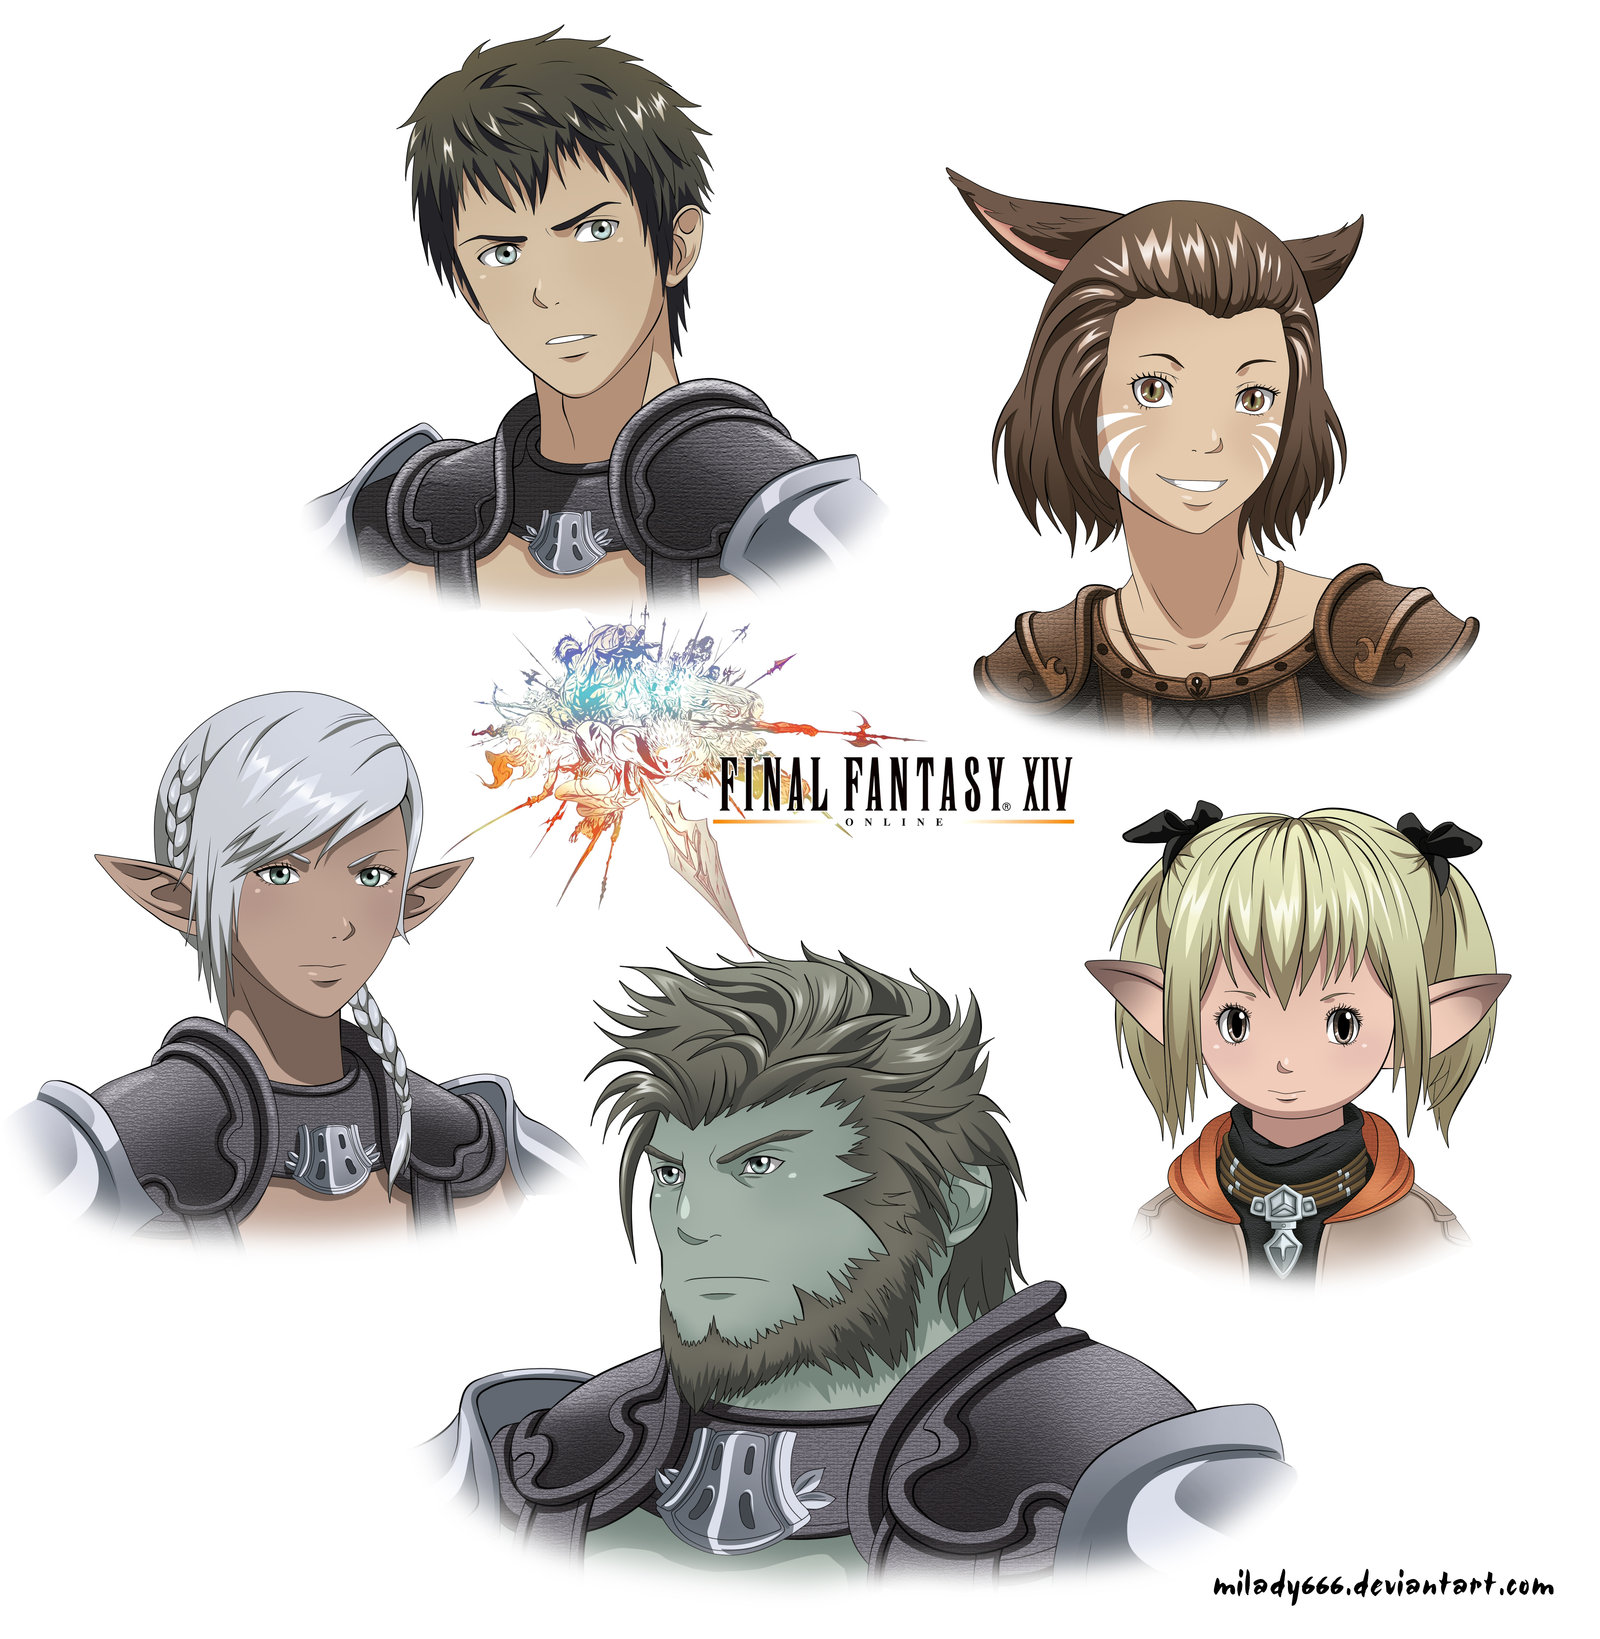 Final Fantasy XIV by Milady666 on DeviantArt.